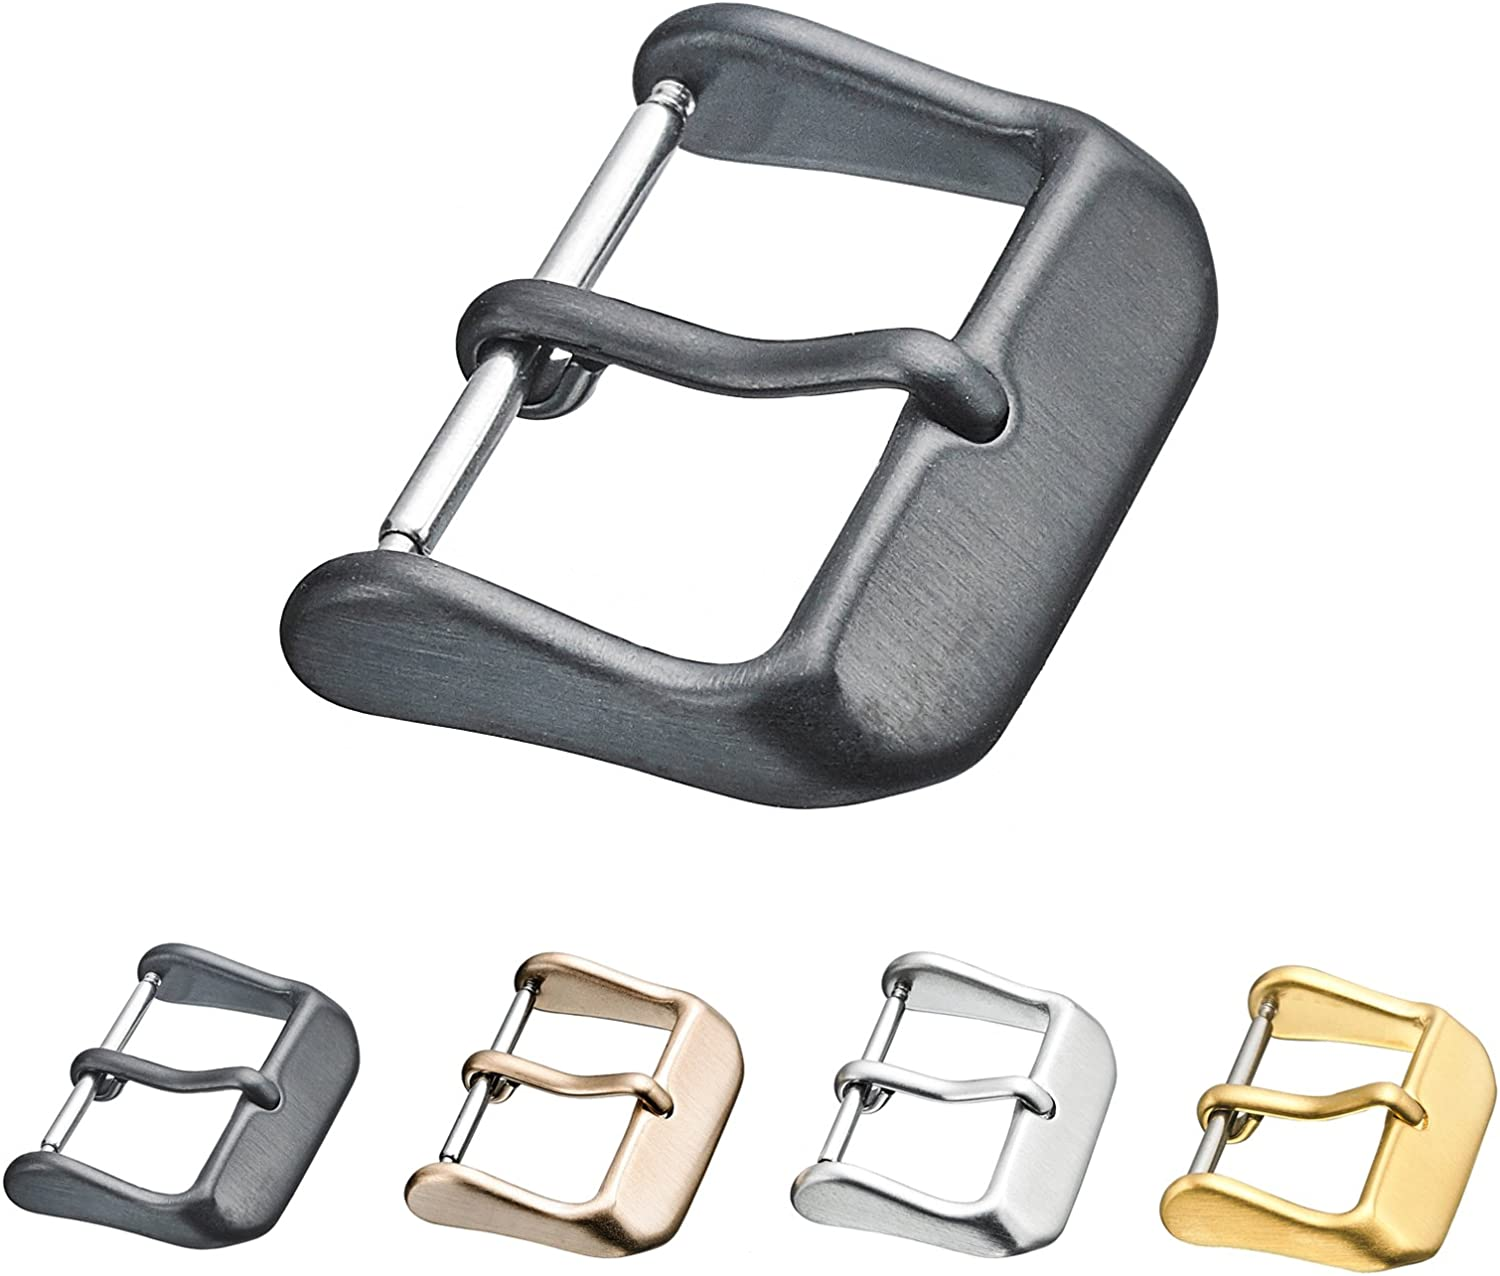 Alpine Replacement Steel Buckle for Watch Bands - Leather Watch Straps Clasp in 16mm, 18mm, 20mm, 22mm, 24mm, 26mm - Silver, Black, Rose Gold, Yellow Color